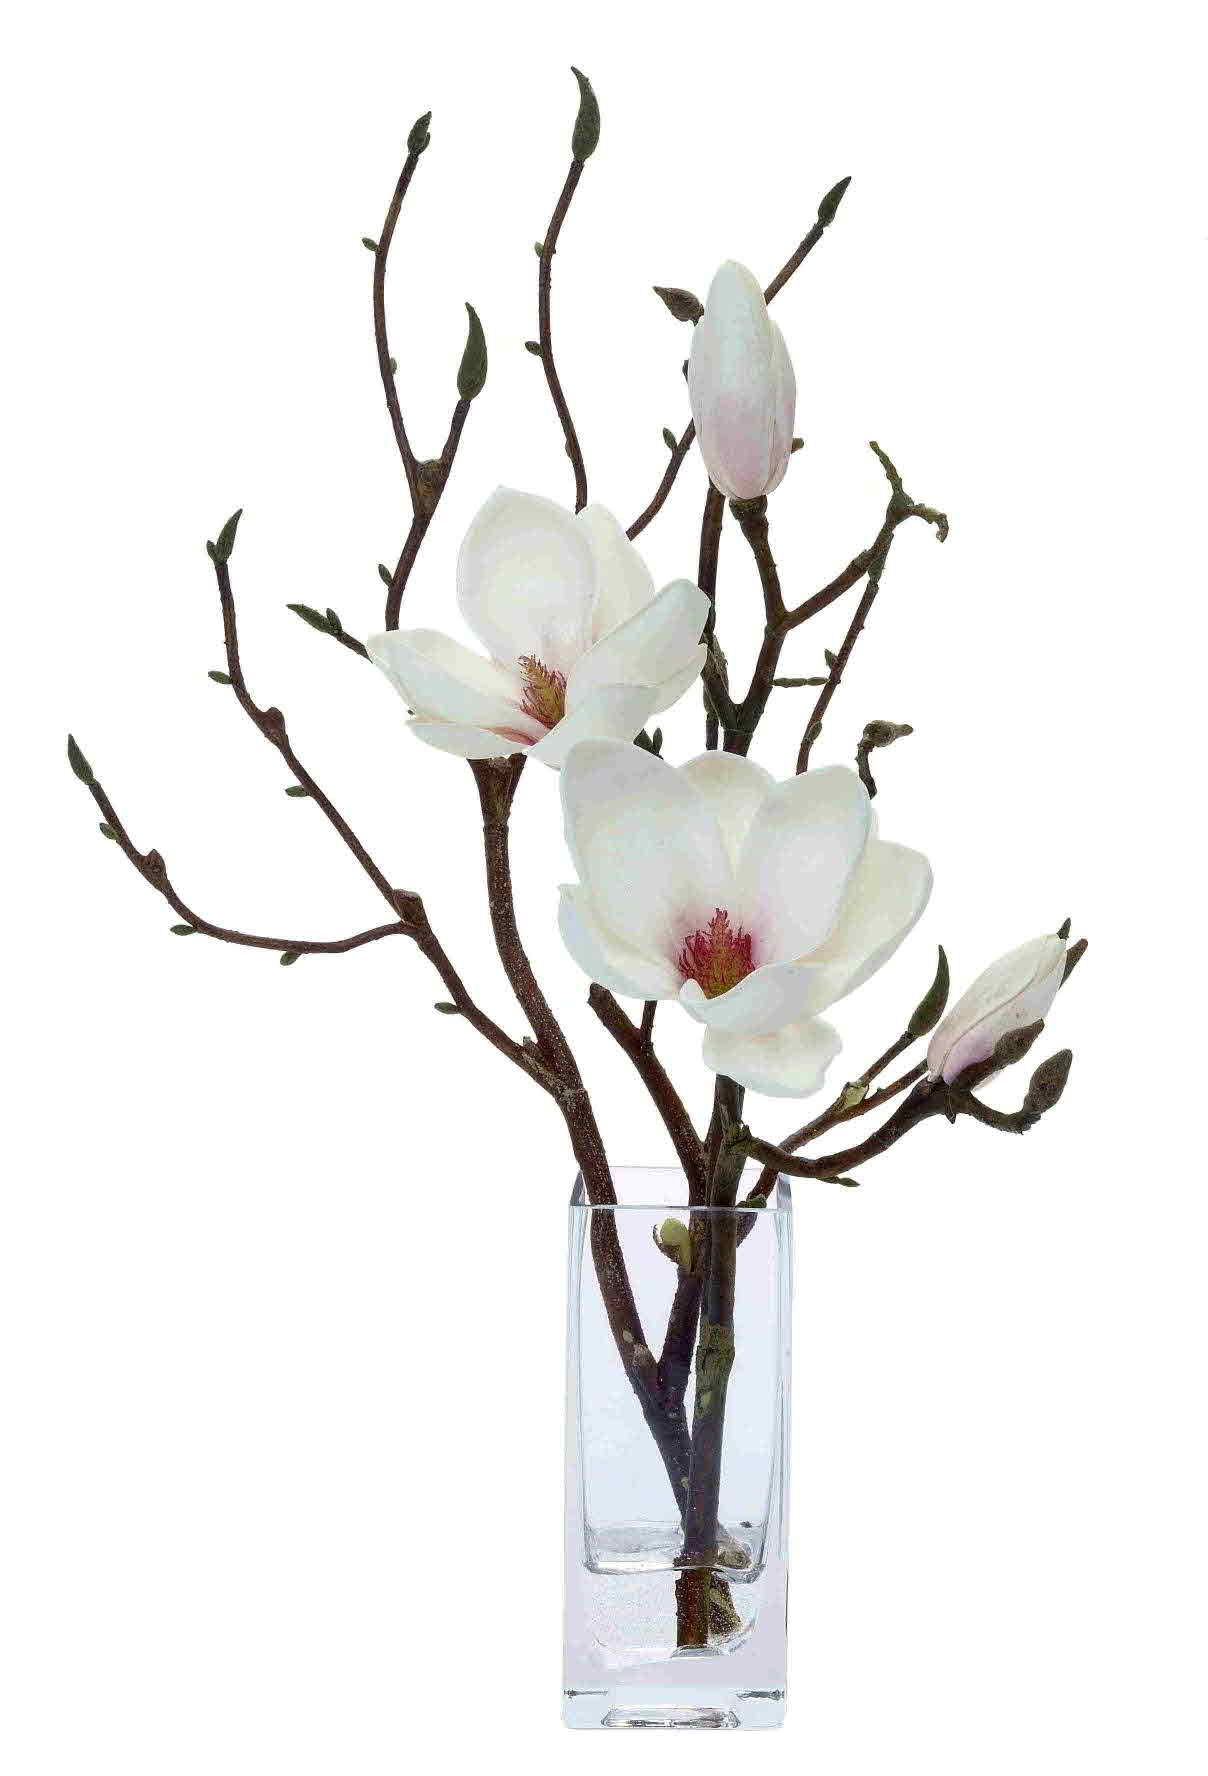 Magnolia branches gardening pinterest magnolia flowers and magnolia branches mightylinksfo Choice Image